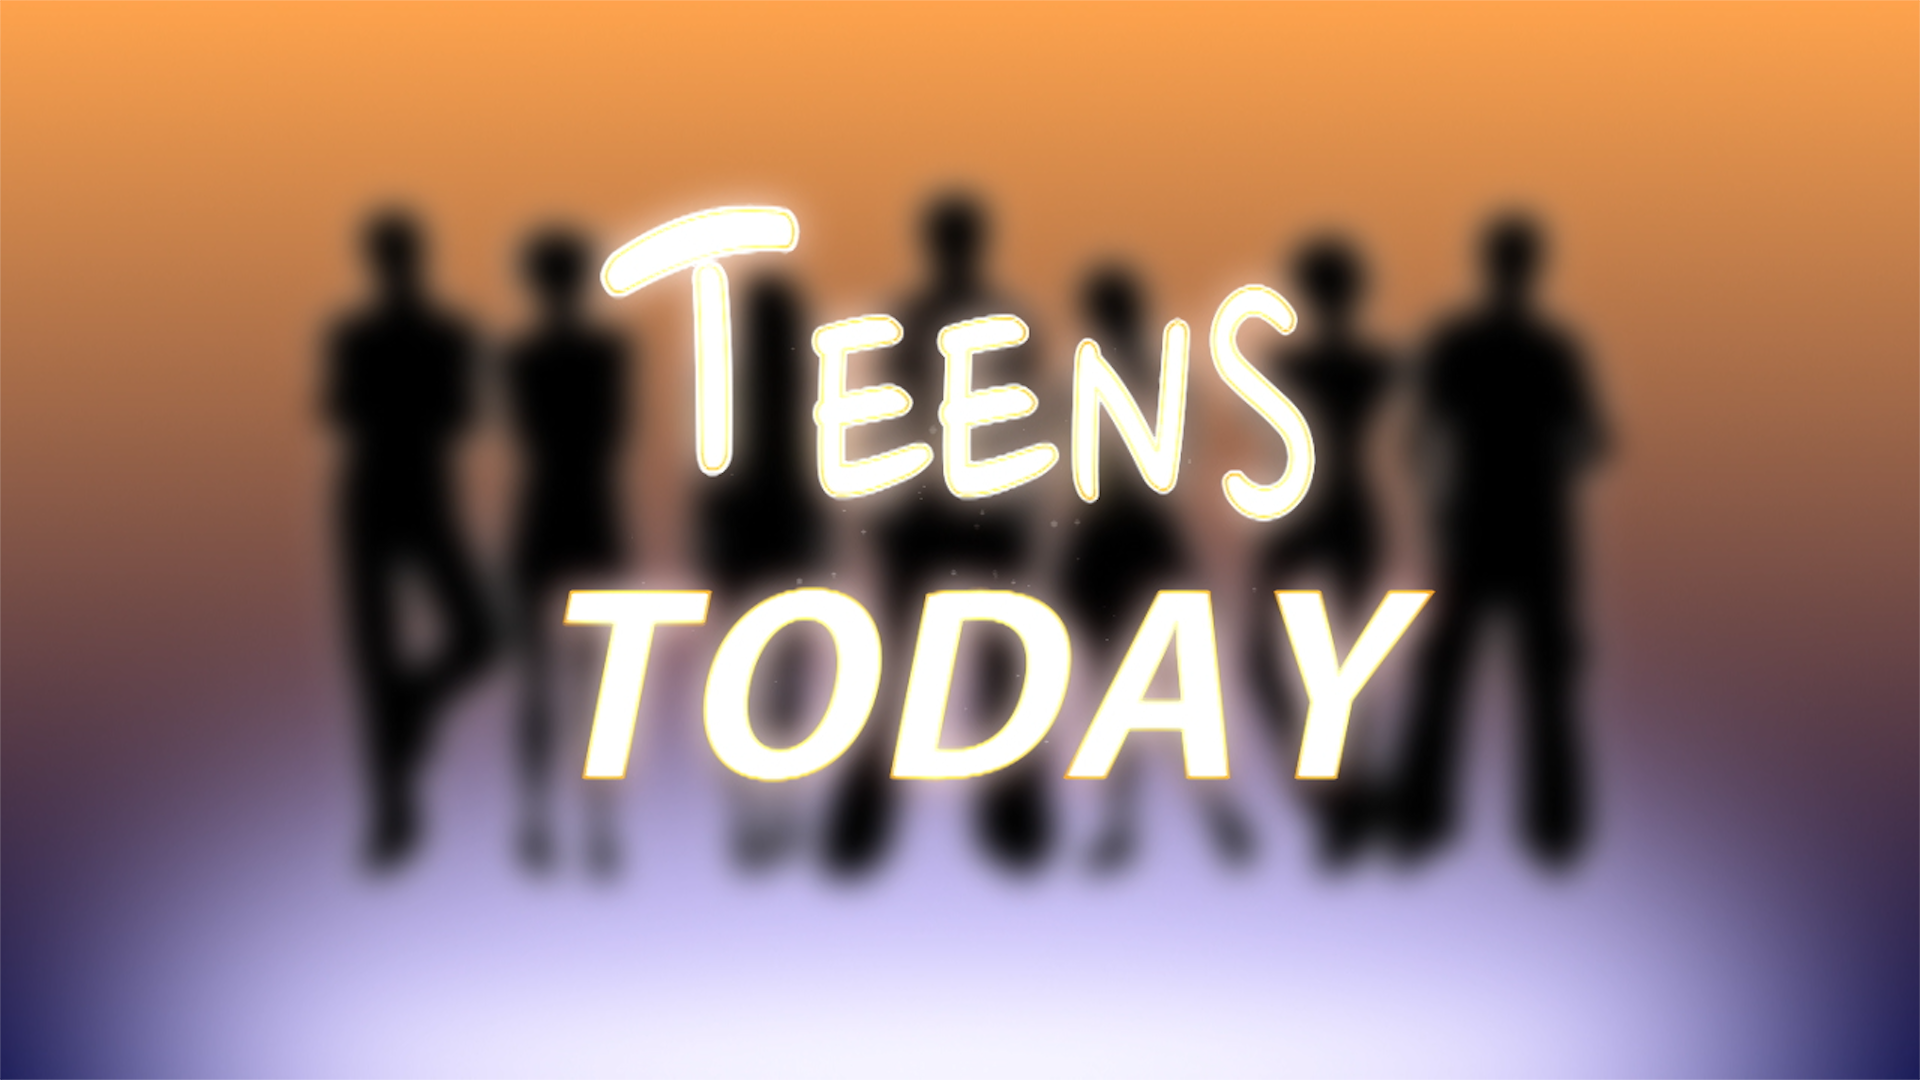 teenagers today